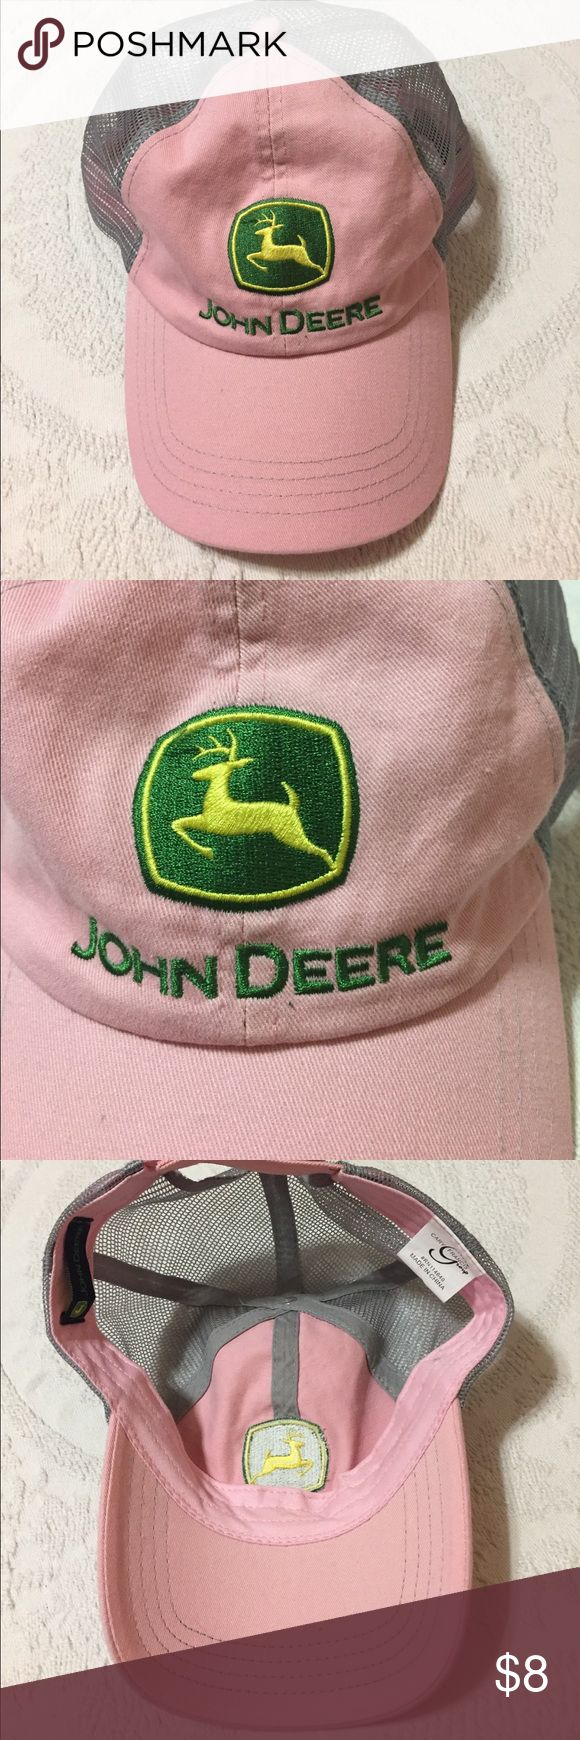 John Deere Baseball Cap Good condition. Adjustable Velcro strap in back. John Deere Accessories Hats